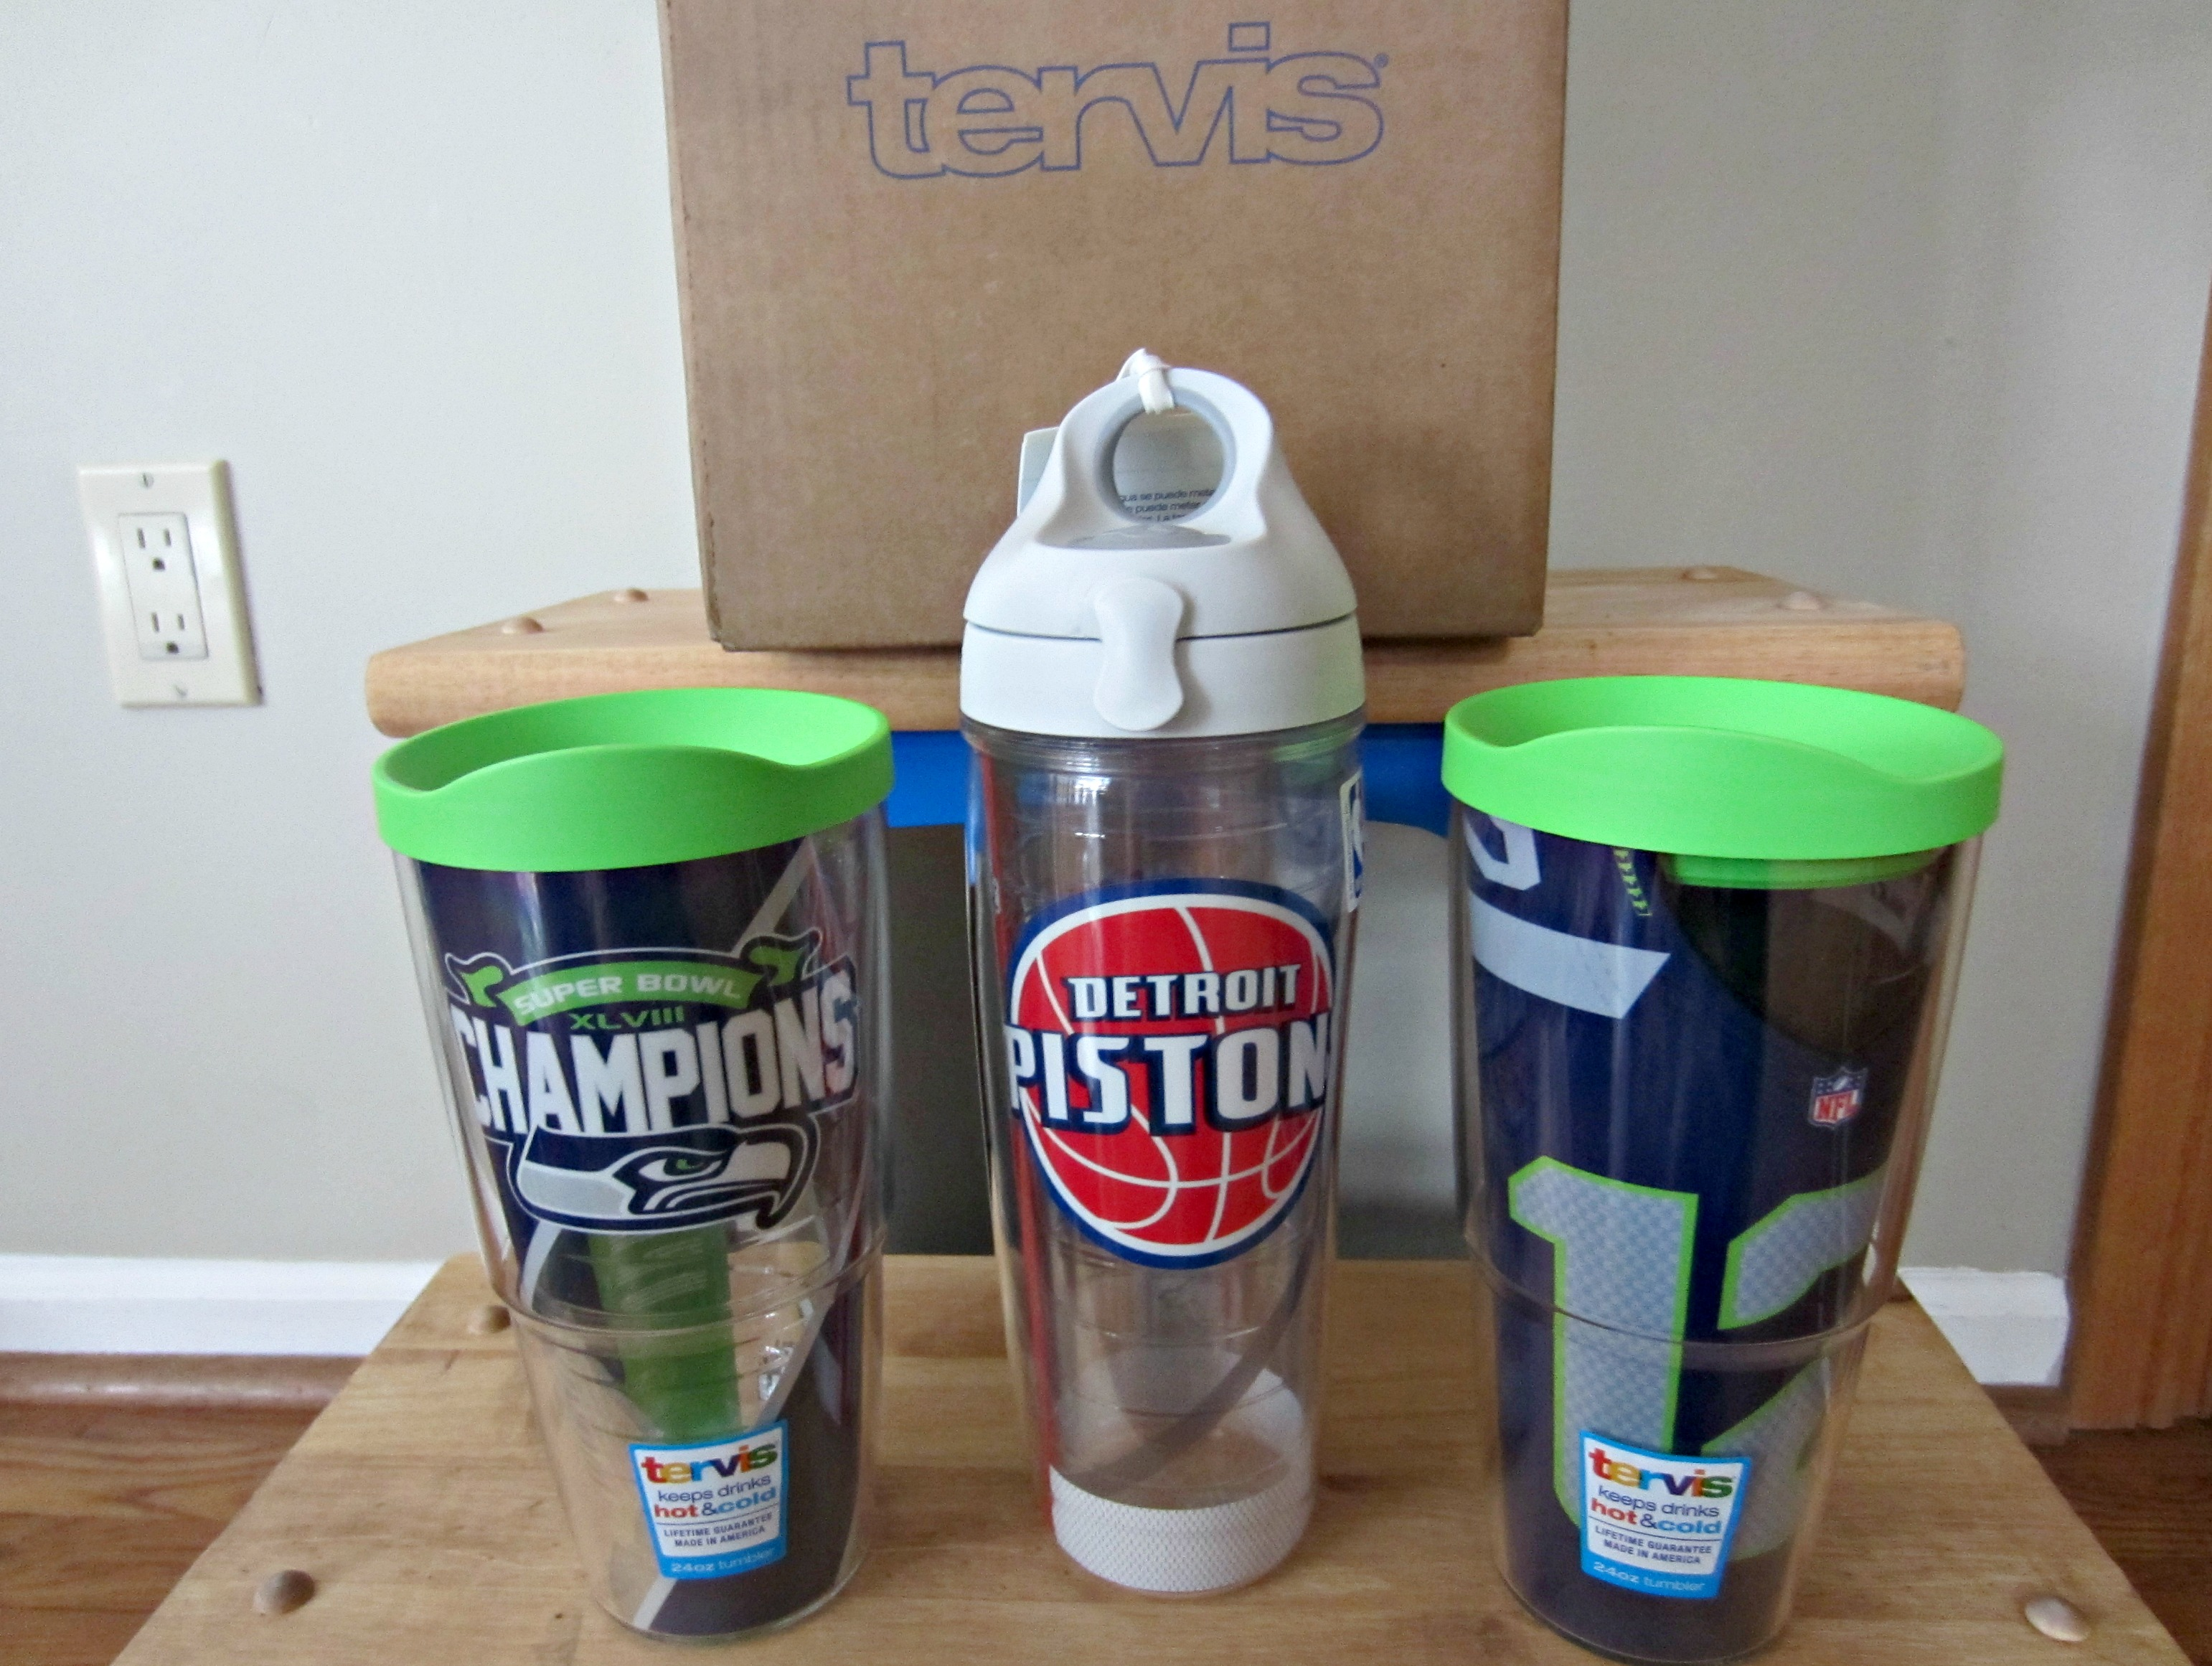 tervis tumblers super bowl champions and detroit pistons